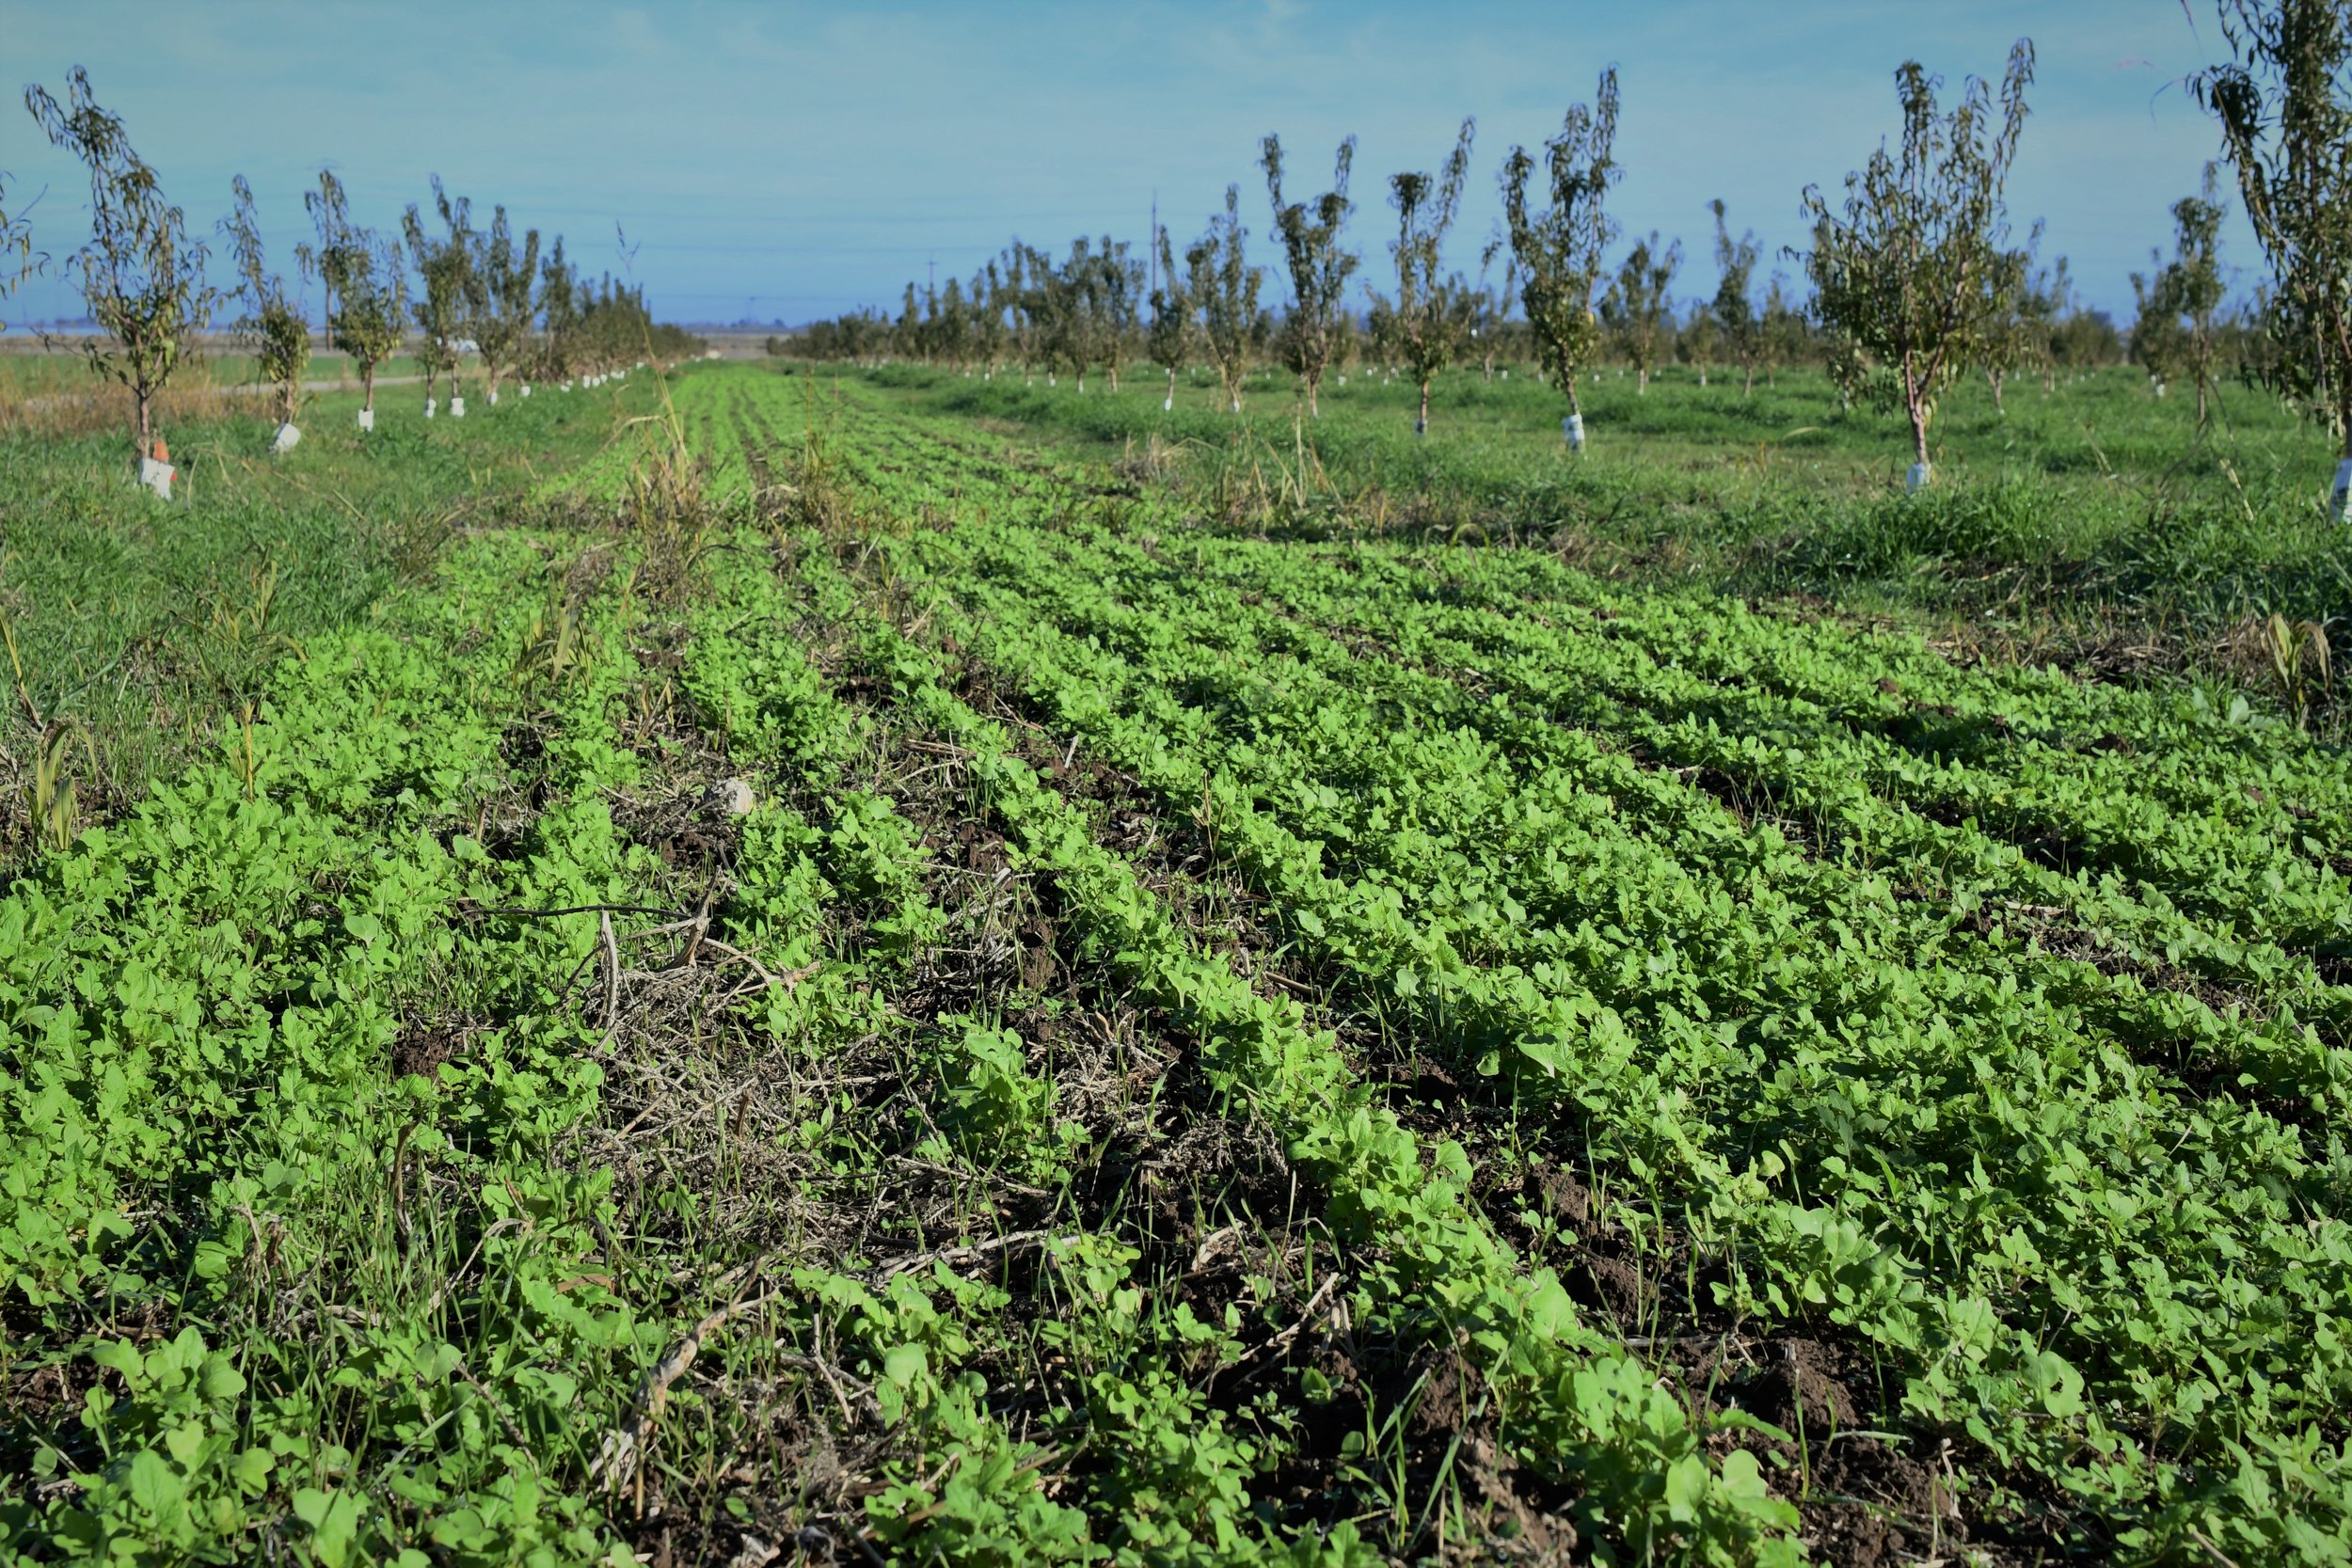 Mustard Mix cover crop in the new almond orchard